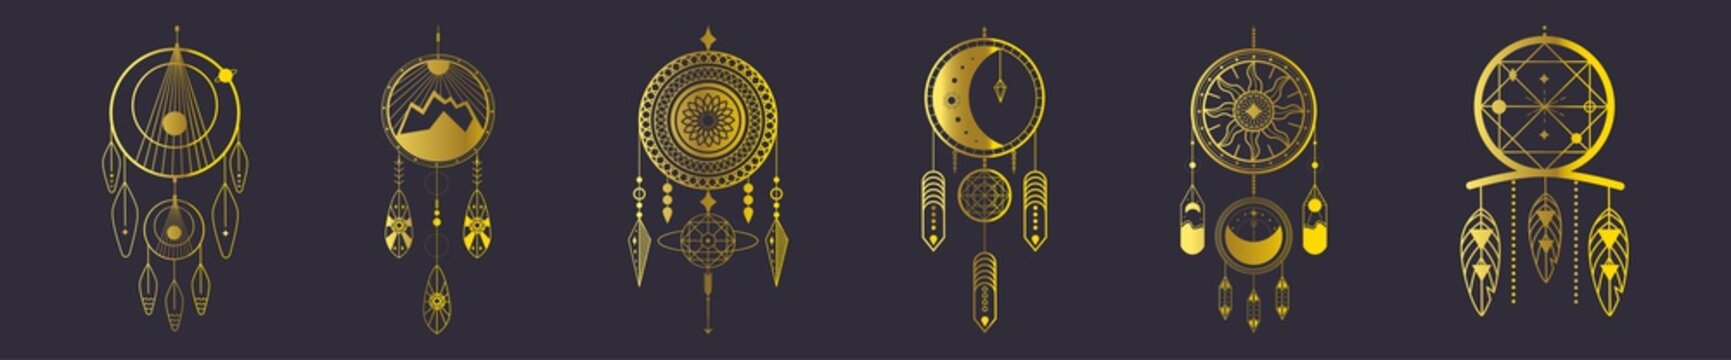 Vector set of dream hunters on a black background. Golden abstract elements.